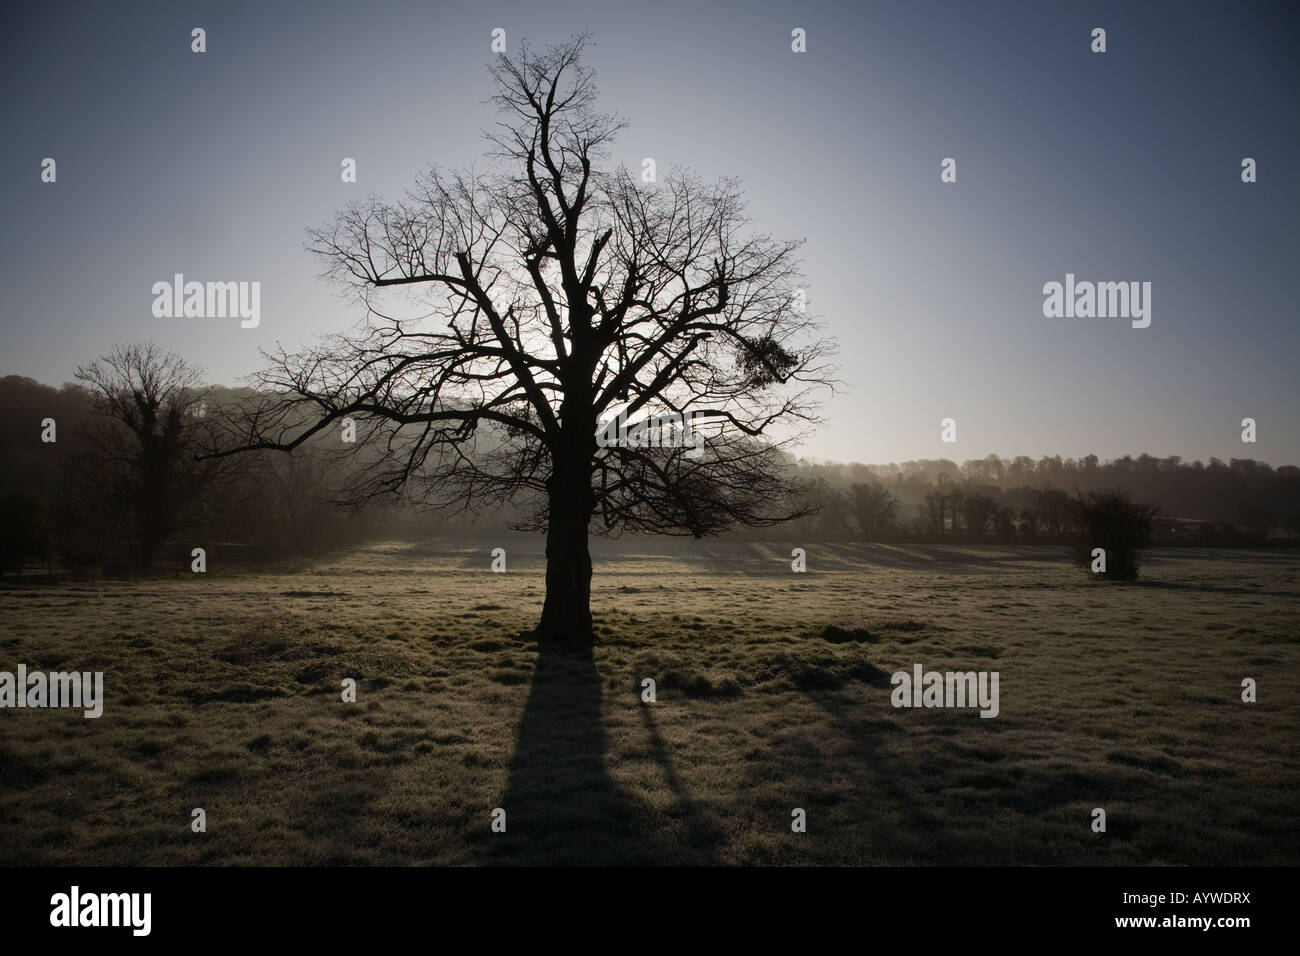 Tree silhouette in early morning sunshine breaking through atmospheric mist in late Winter weather - Stock Image